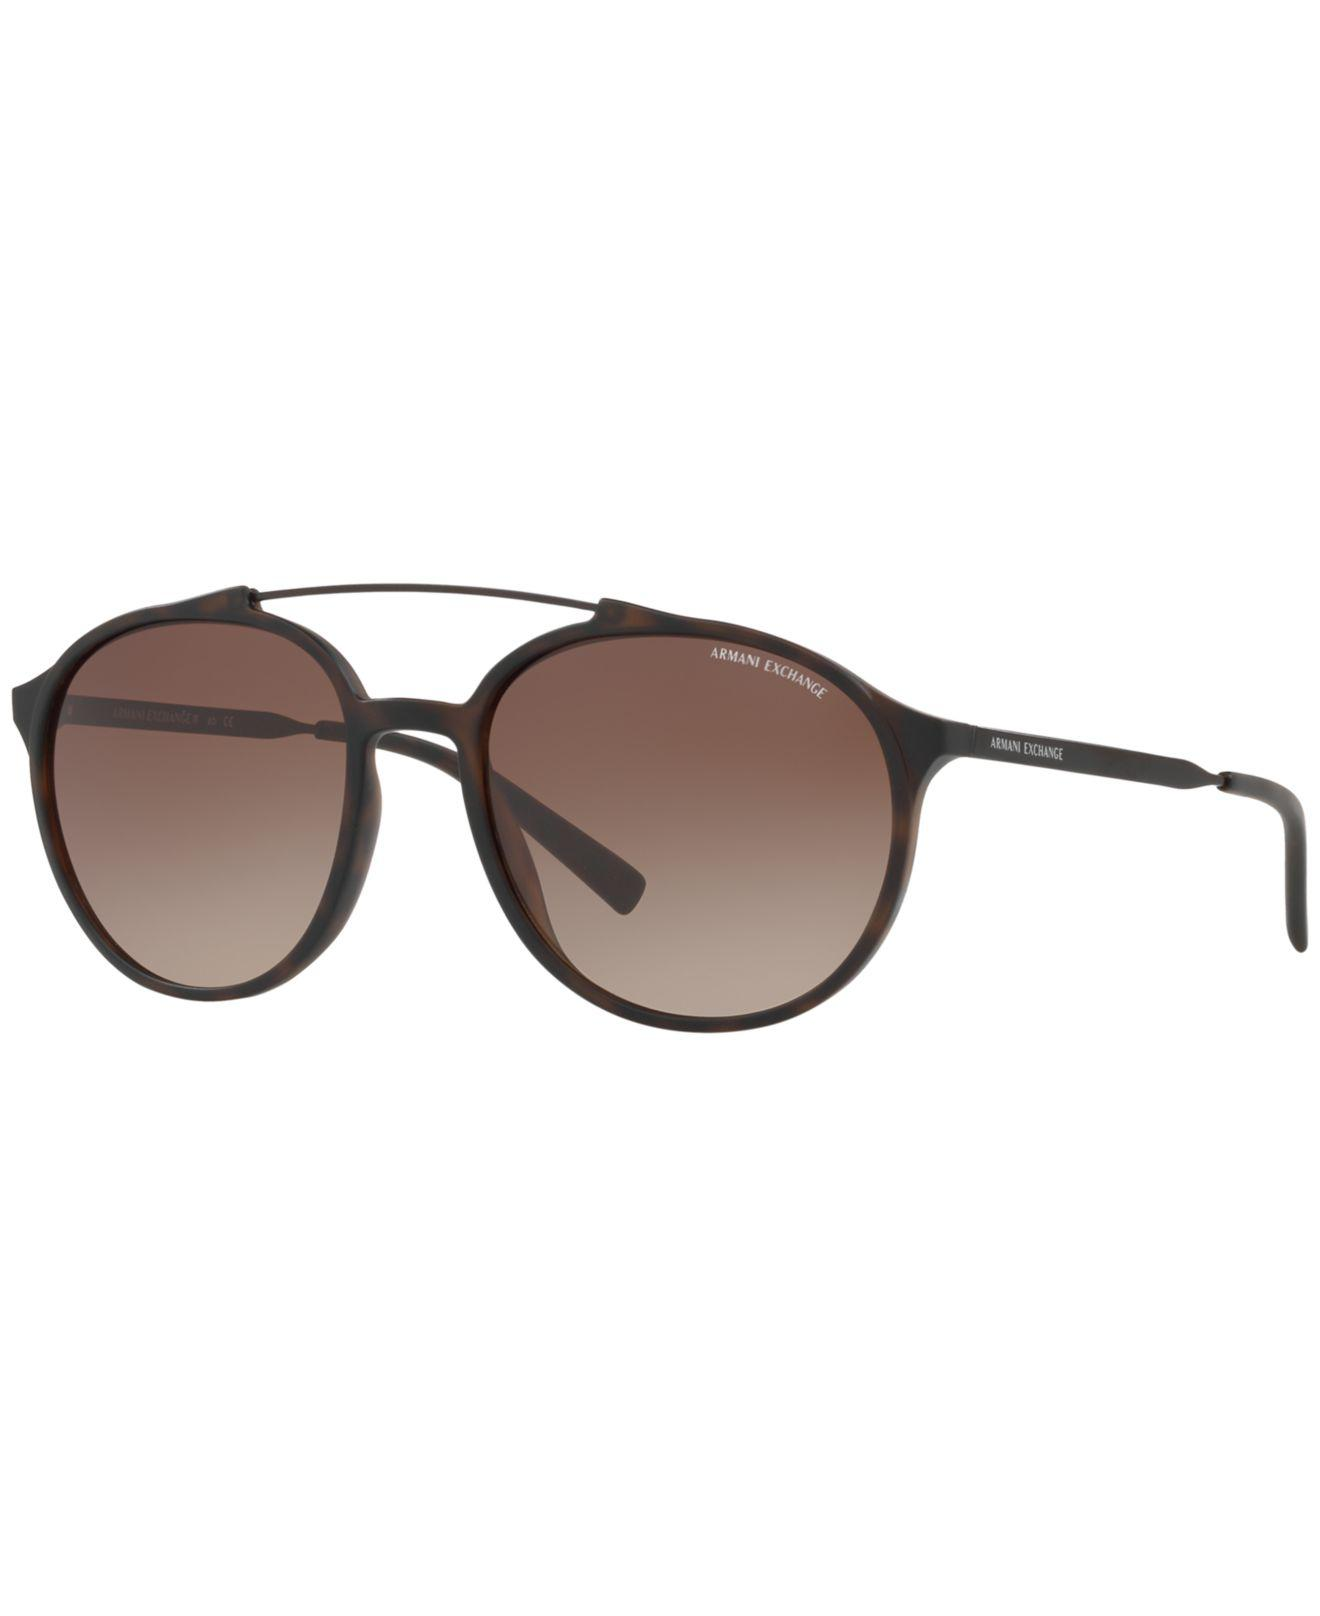 dbee7c911e8 Armani Exchange - Brown Exchange Sunglasses